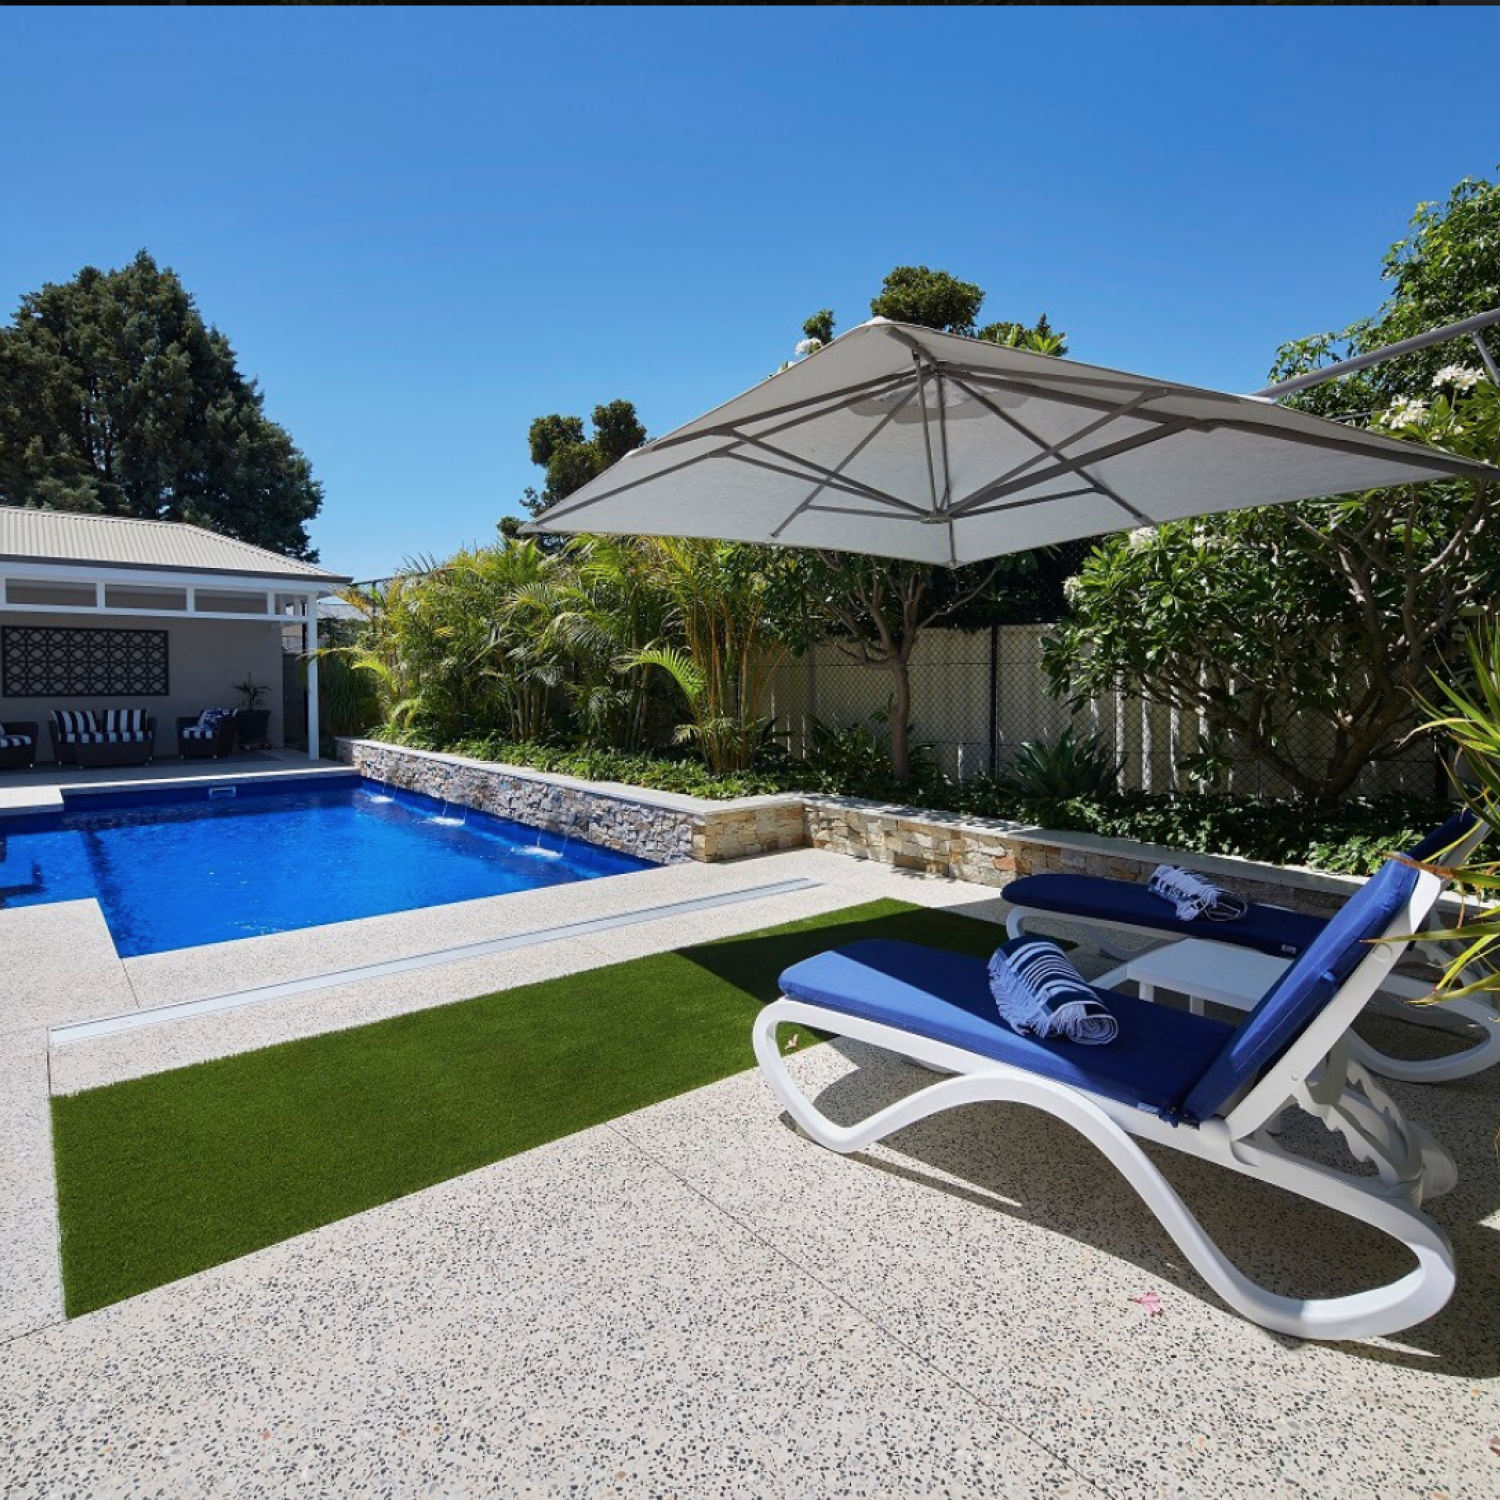 Fibreglass Pools and Shells: Newcastle, Central Coast and Hunter Valley